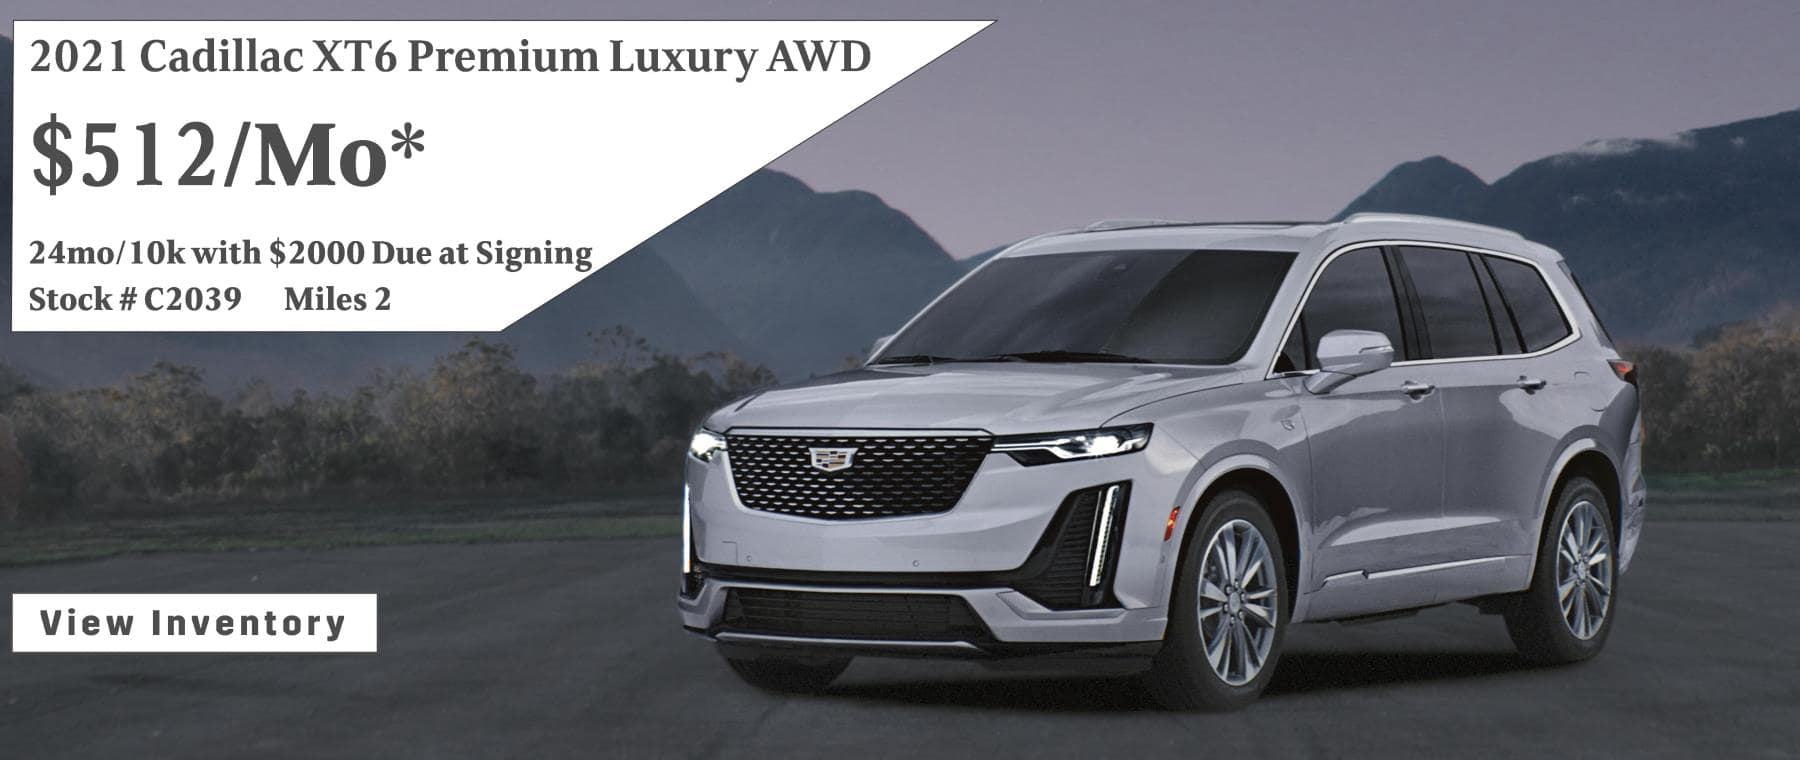 June 2021 Cadillac XT6 Lease Special $512/mo*